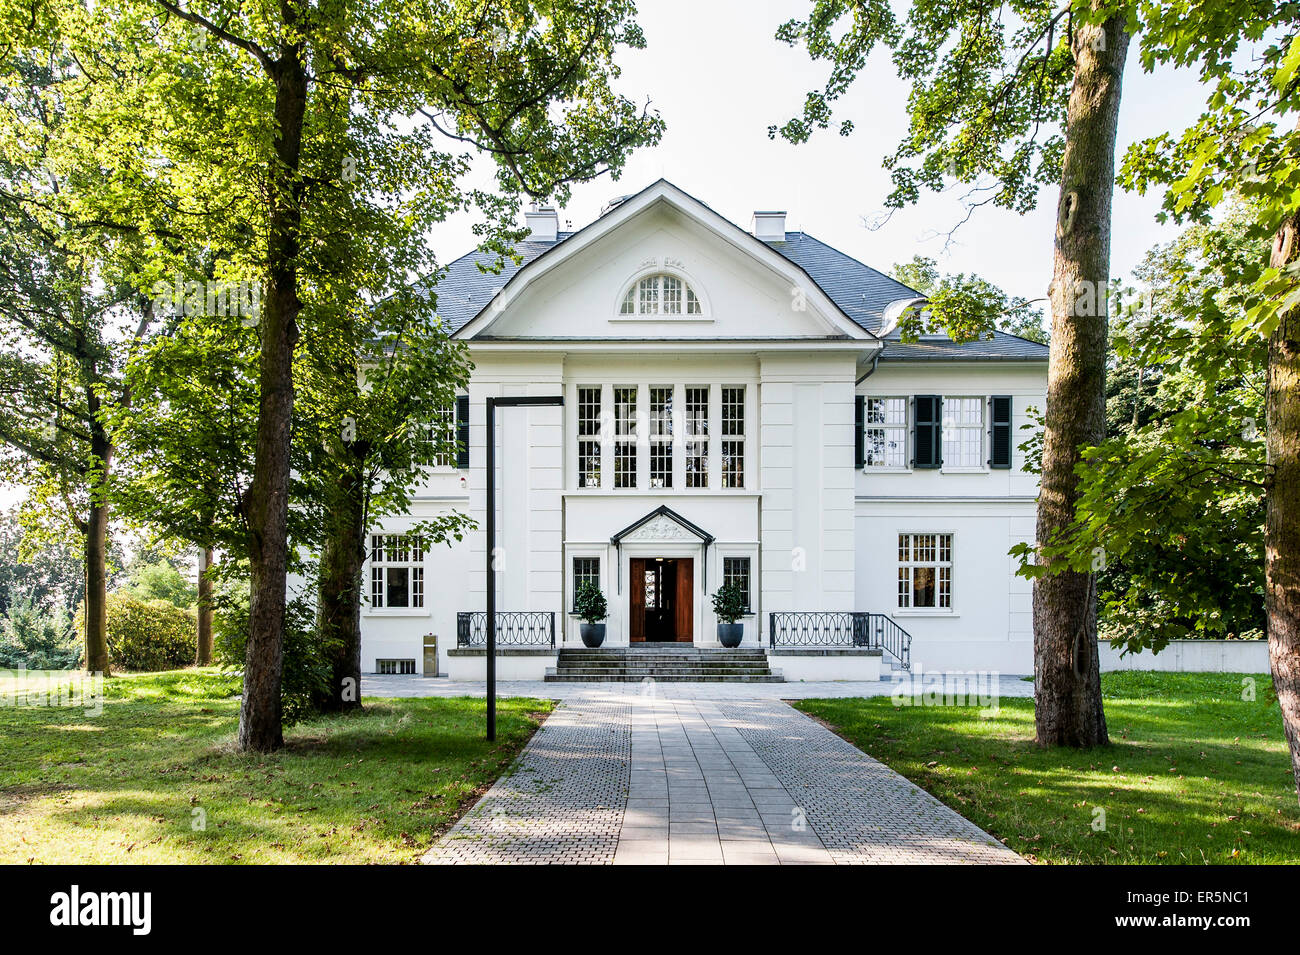 latest presenting official Villa in Heine park along the Elbchaussee in Hamburg ...